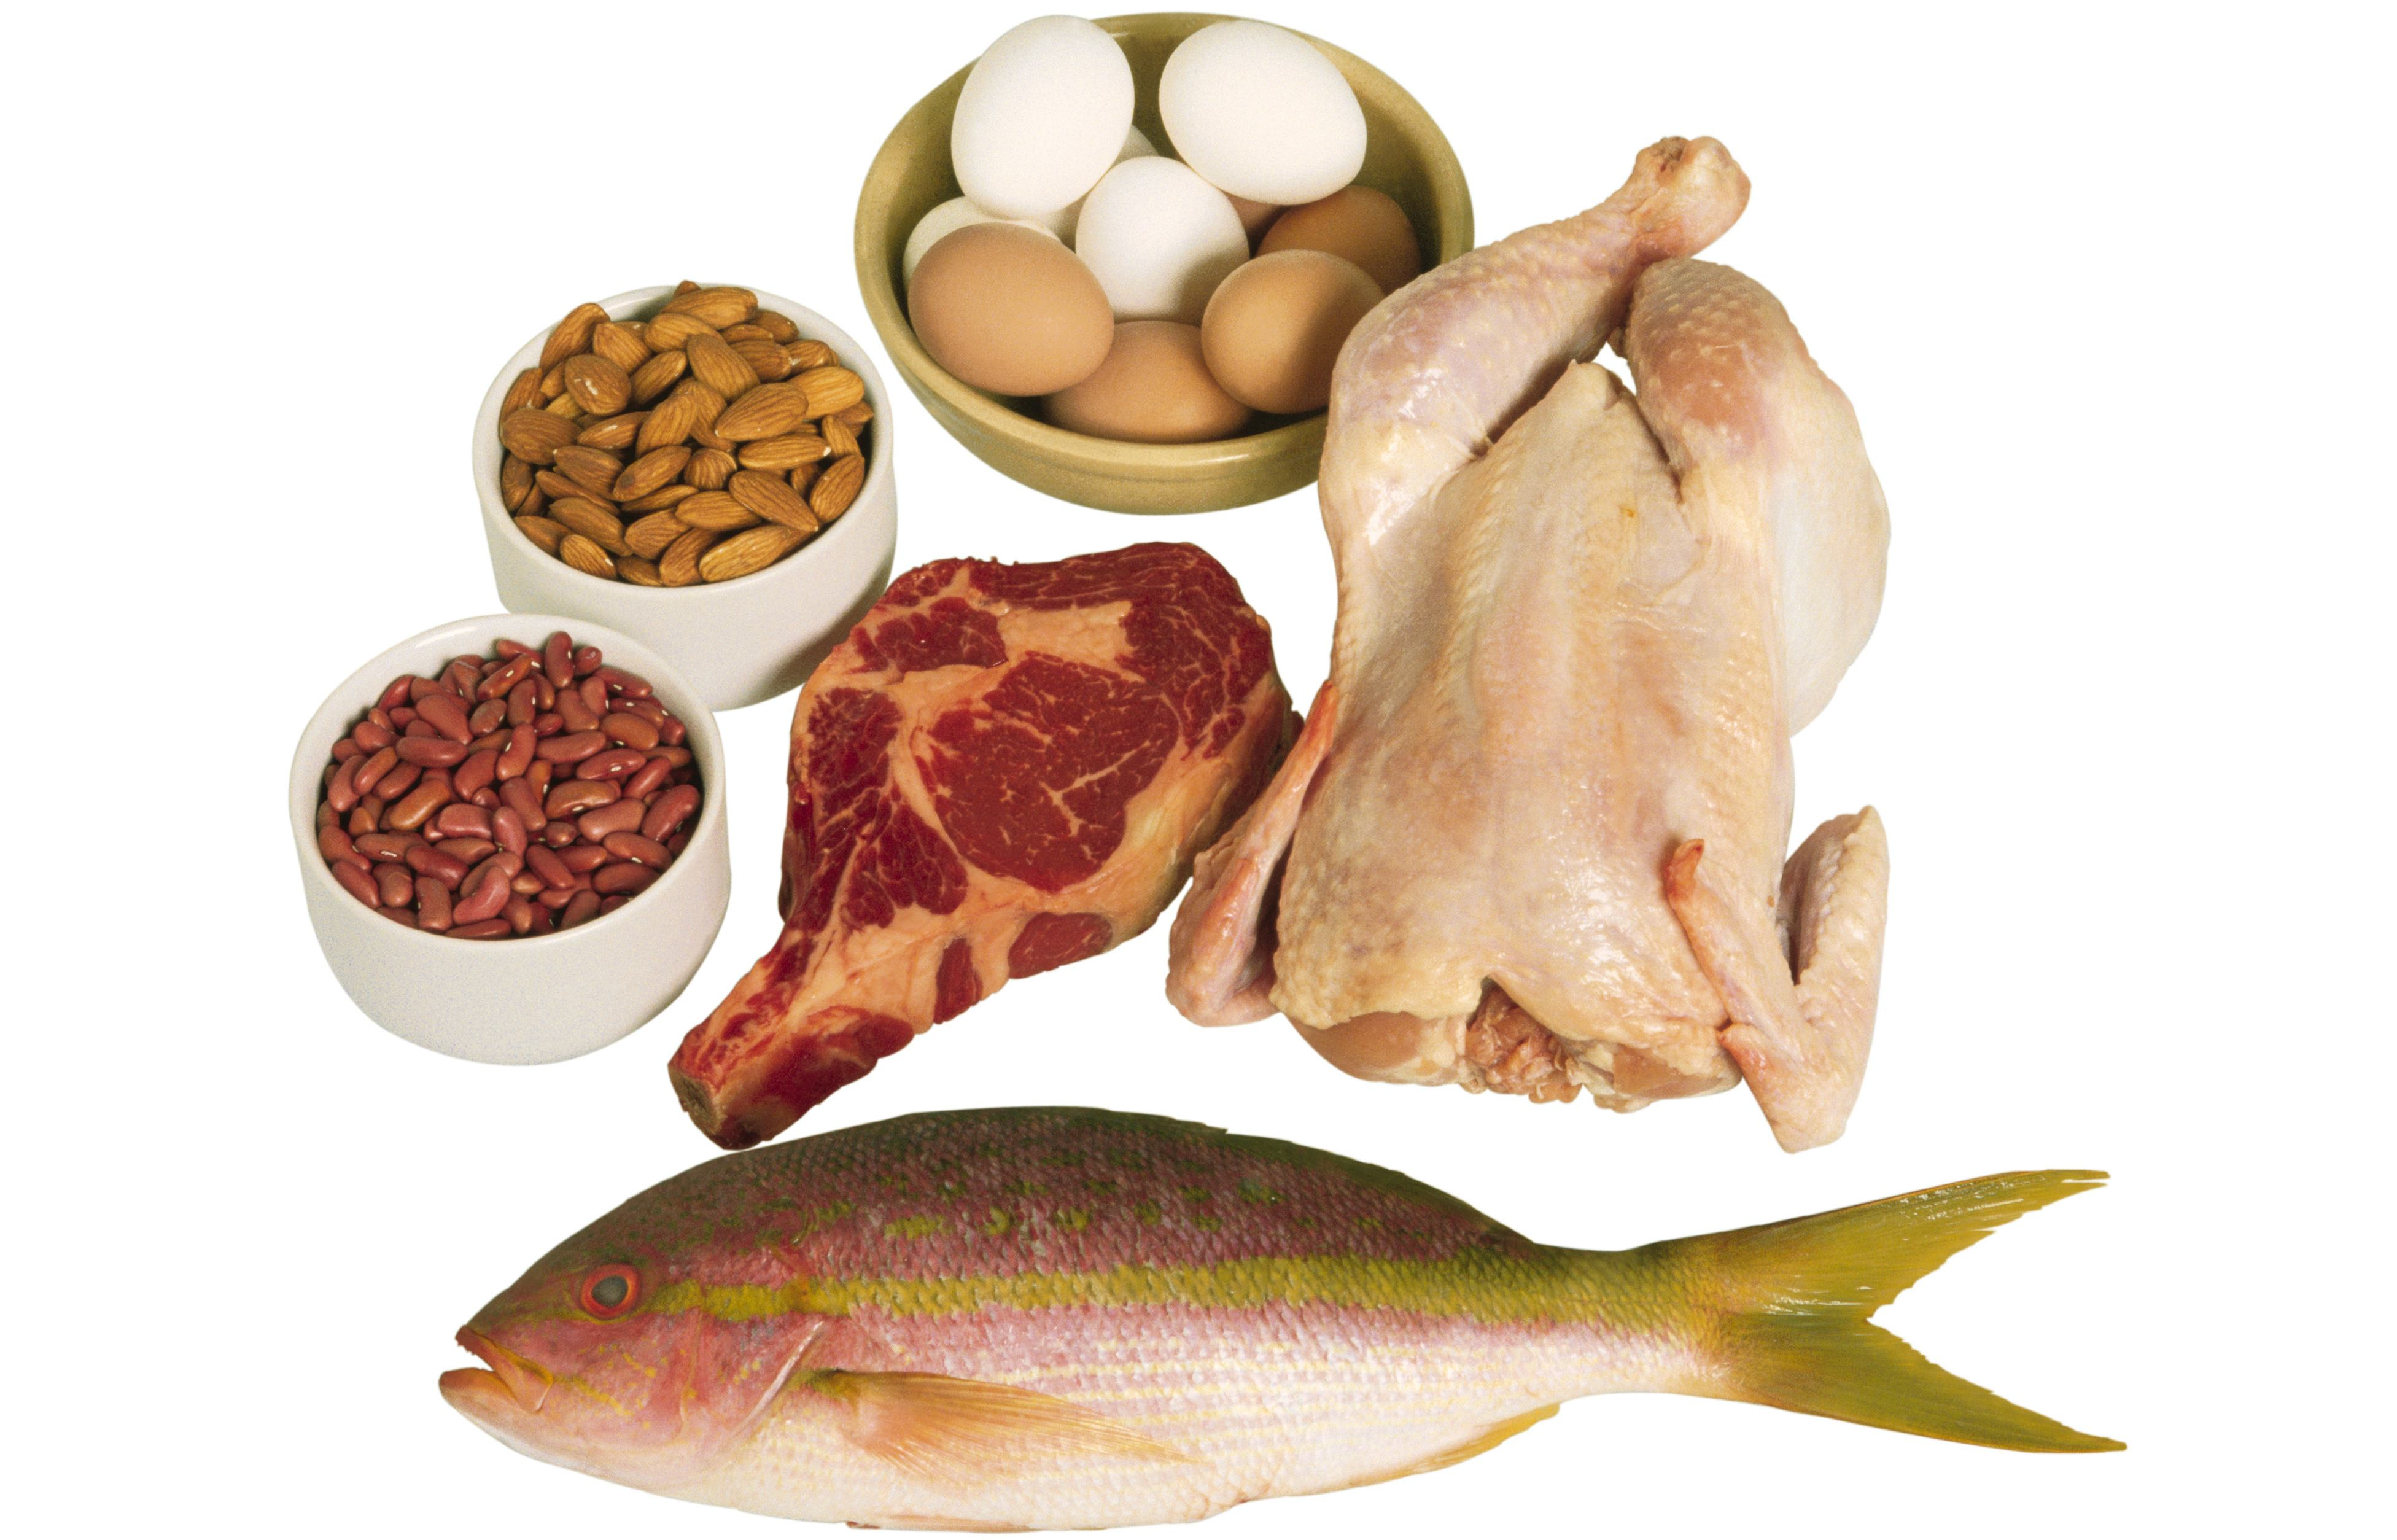 Easily Digested Foods Diet